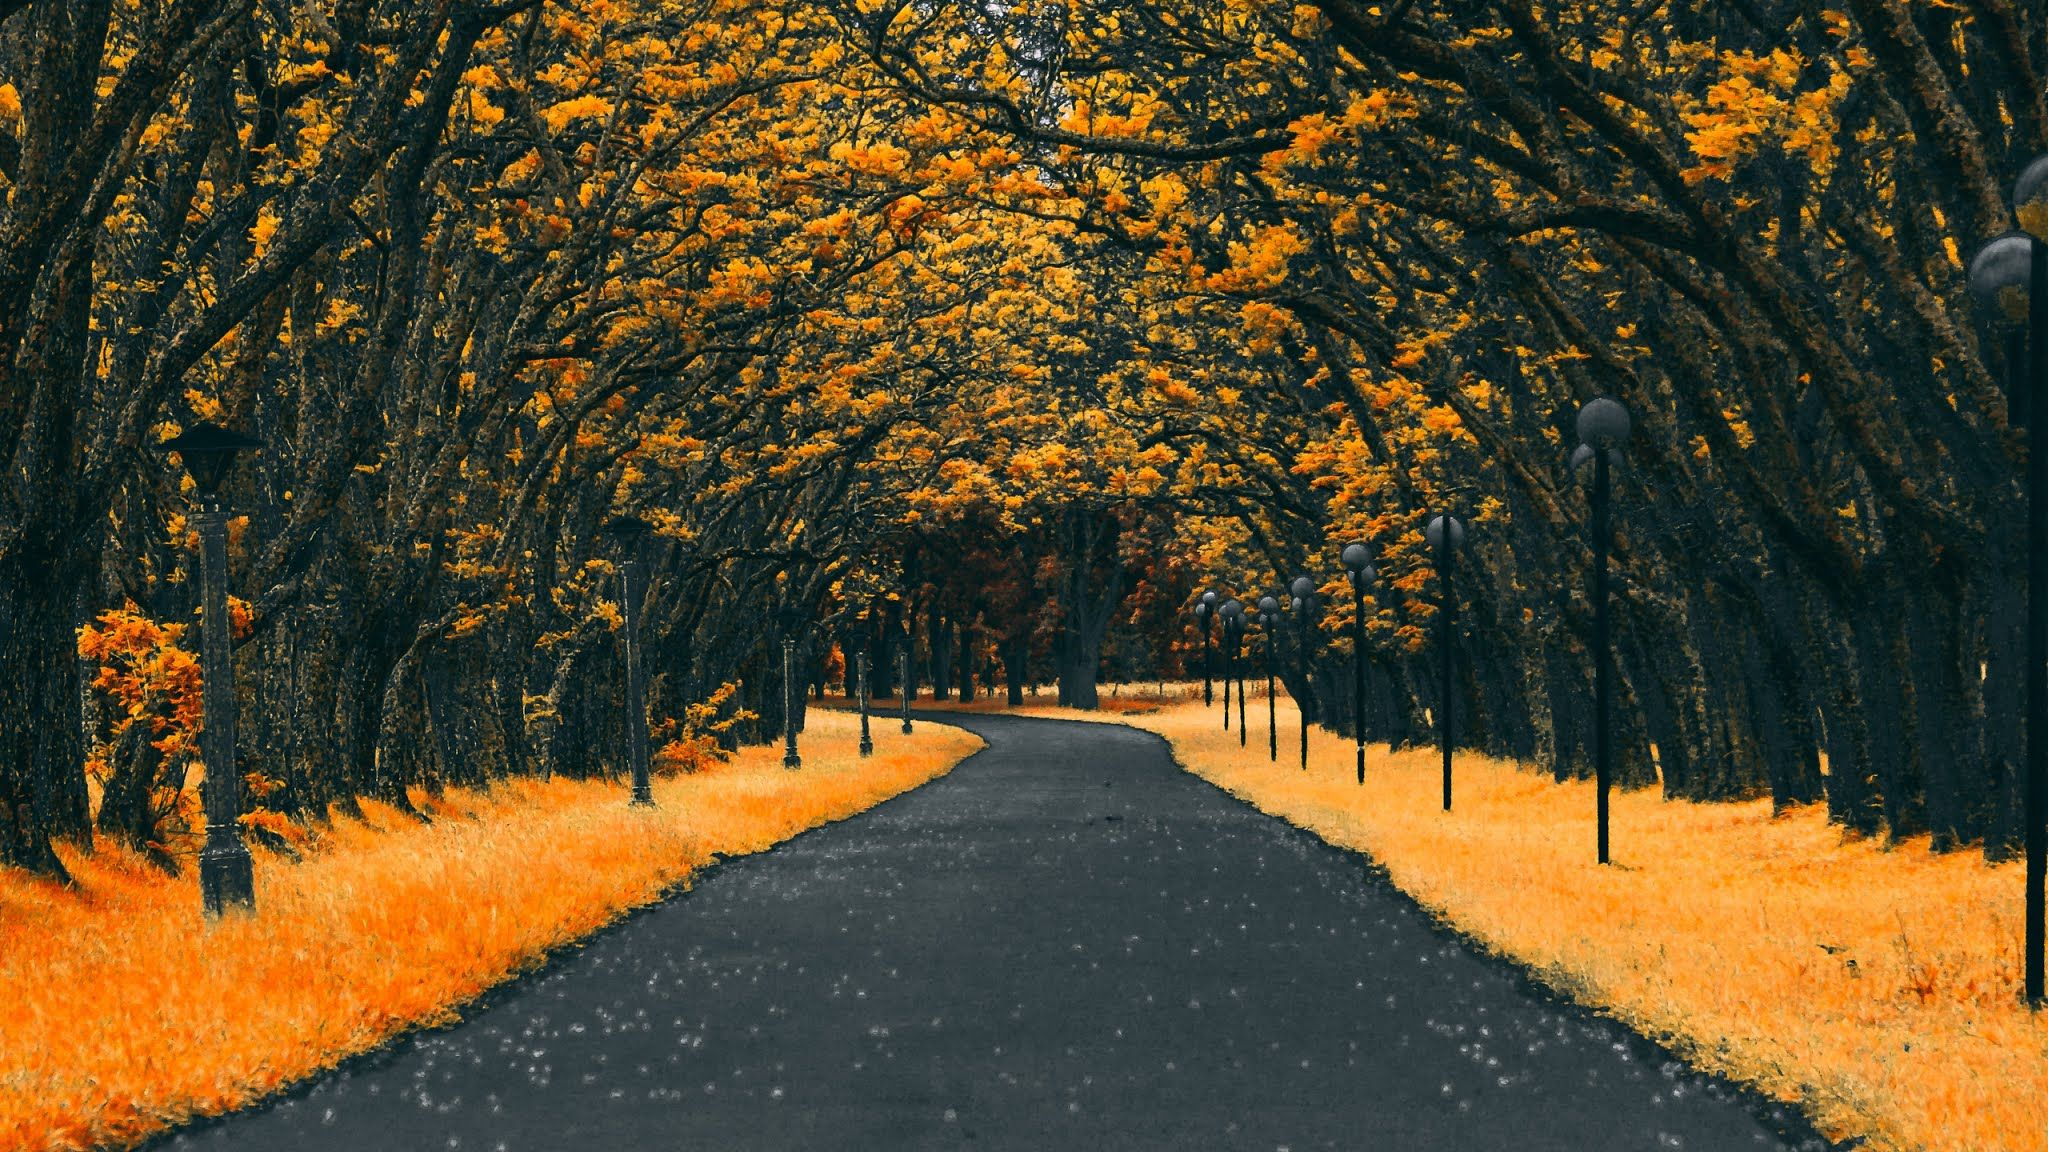 Autumn Road Nature 4k Wallpapers